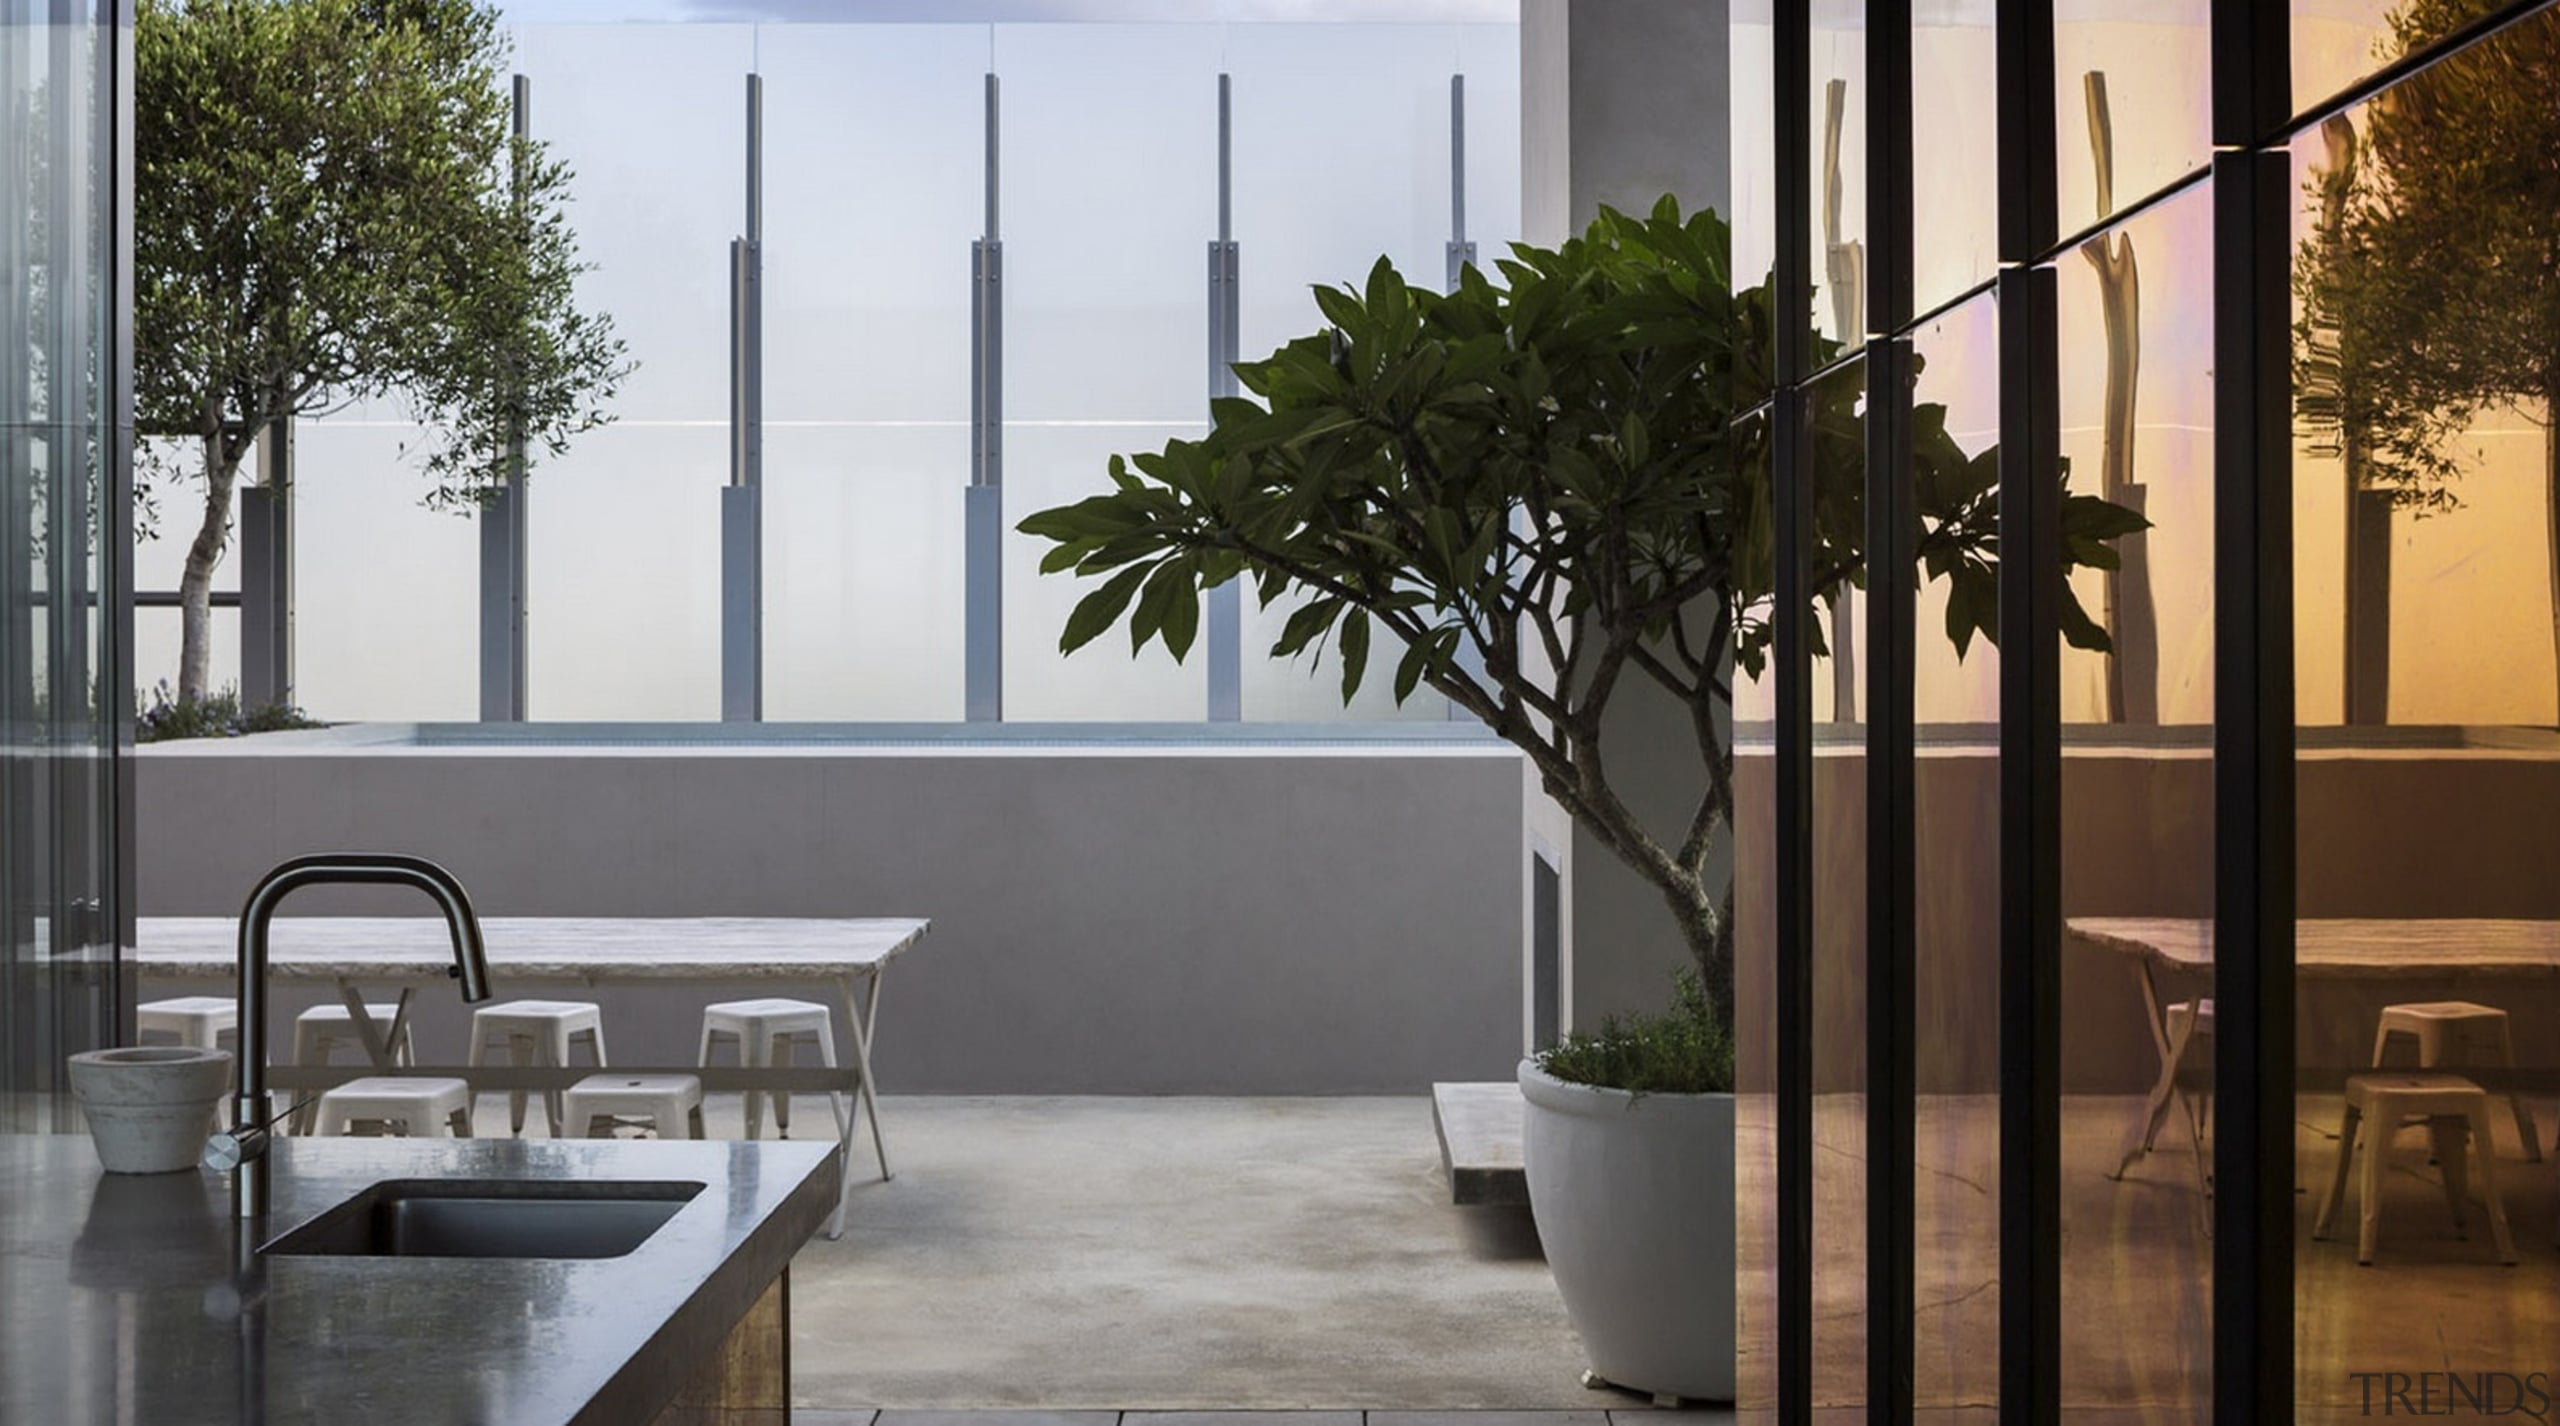 Winner of the Villa Category at the World architecture, glass, home, house, interior design, window, gray, black